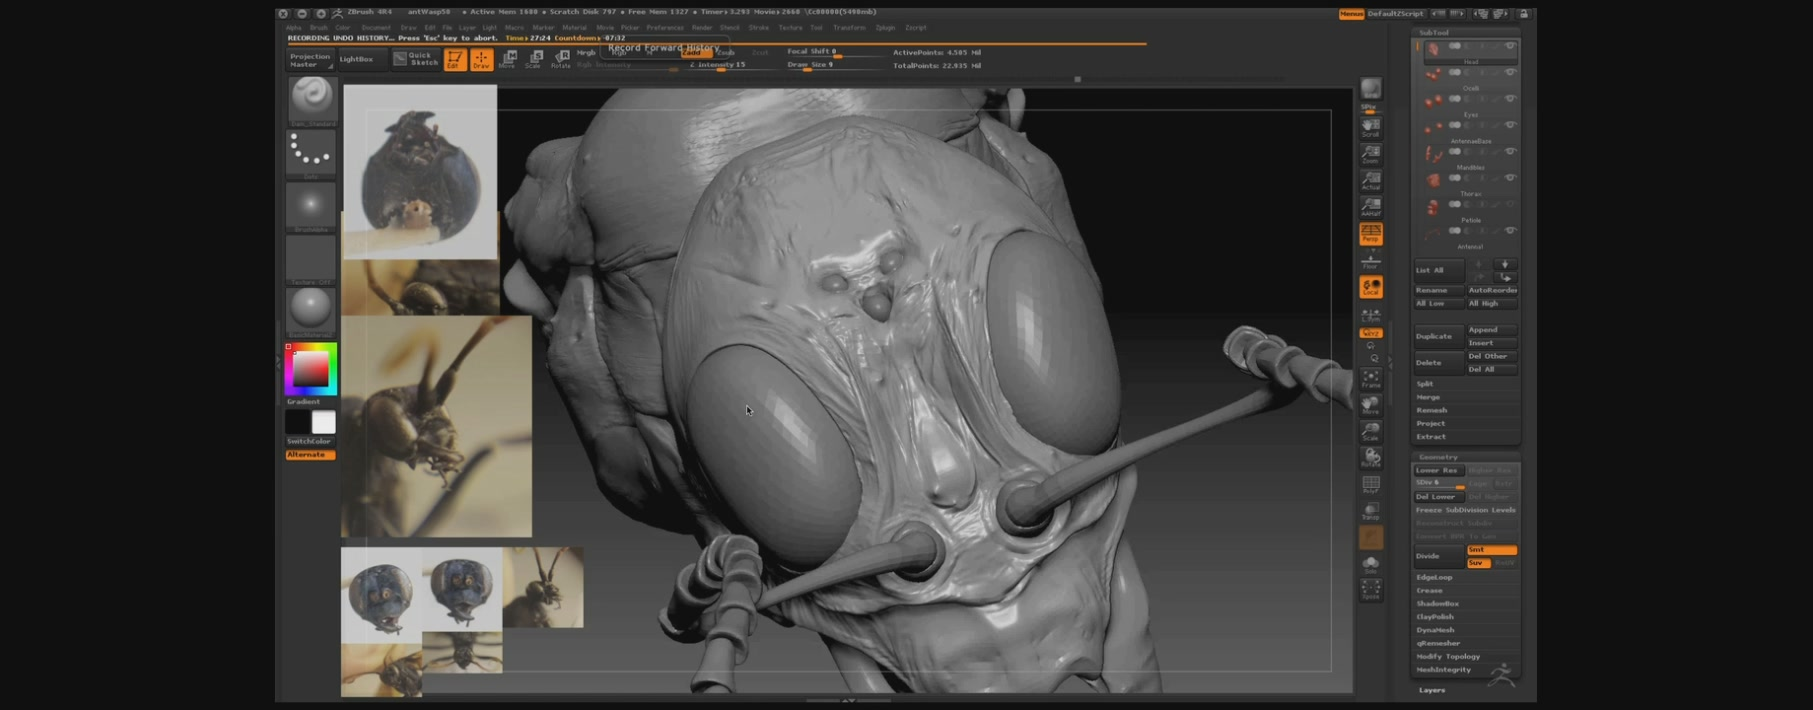 The Gnomon Workshop: Hyper-real Insect Design with Eric Keller